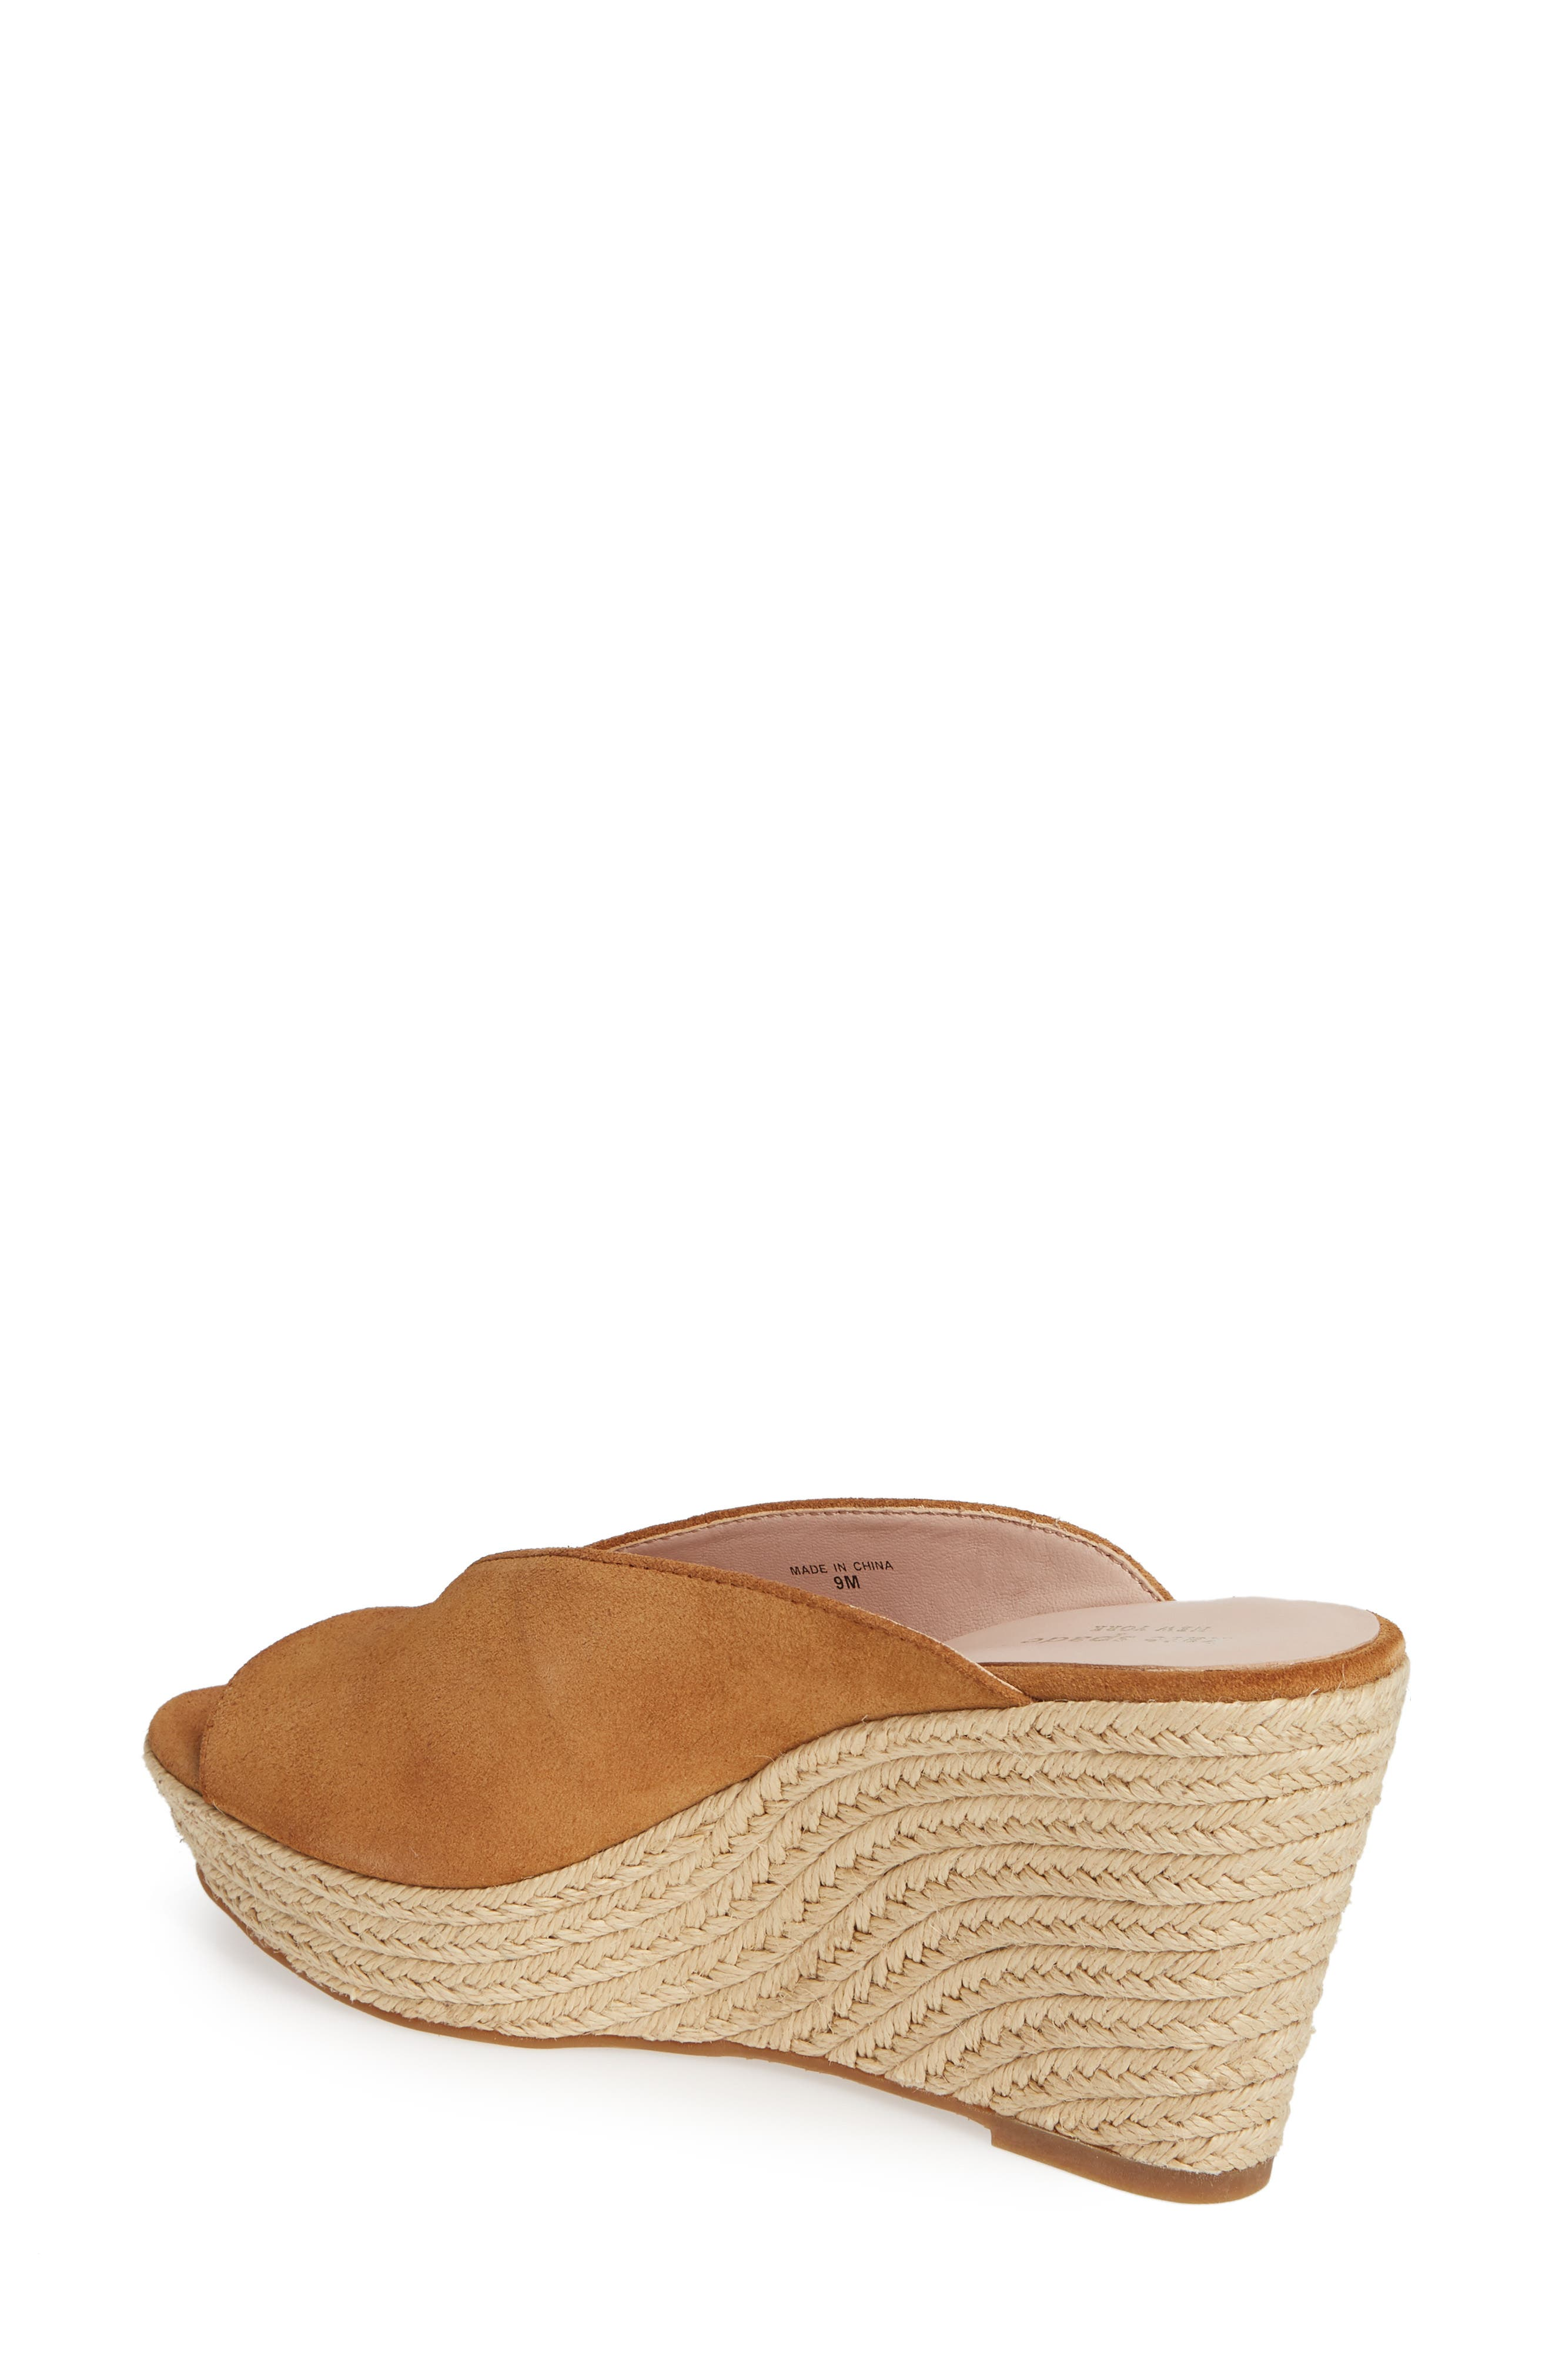 KATE SPADE NEW YORK, thea wedge espadrille mule, Alternate thumbnail 2, color, TOAST